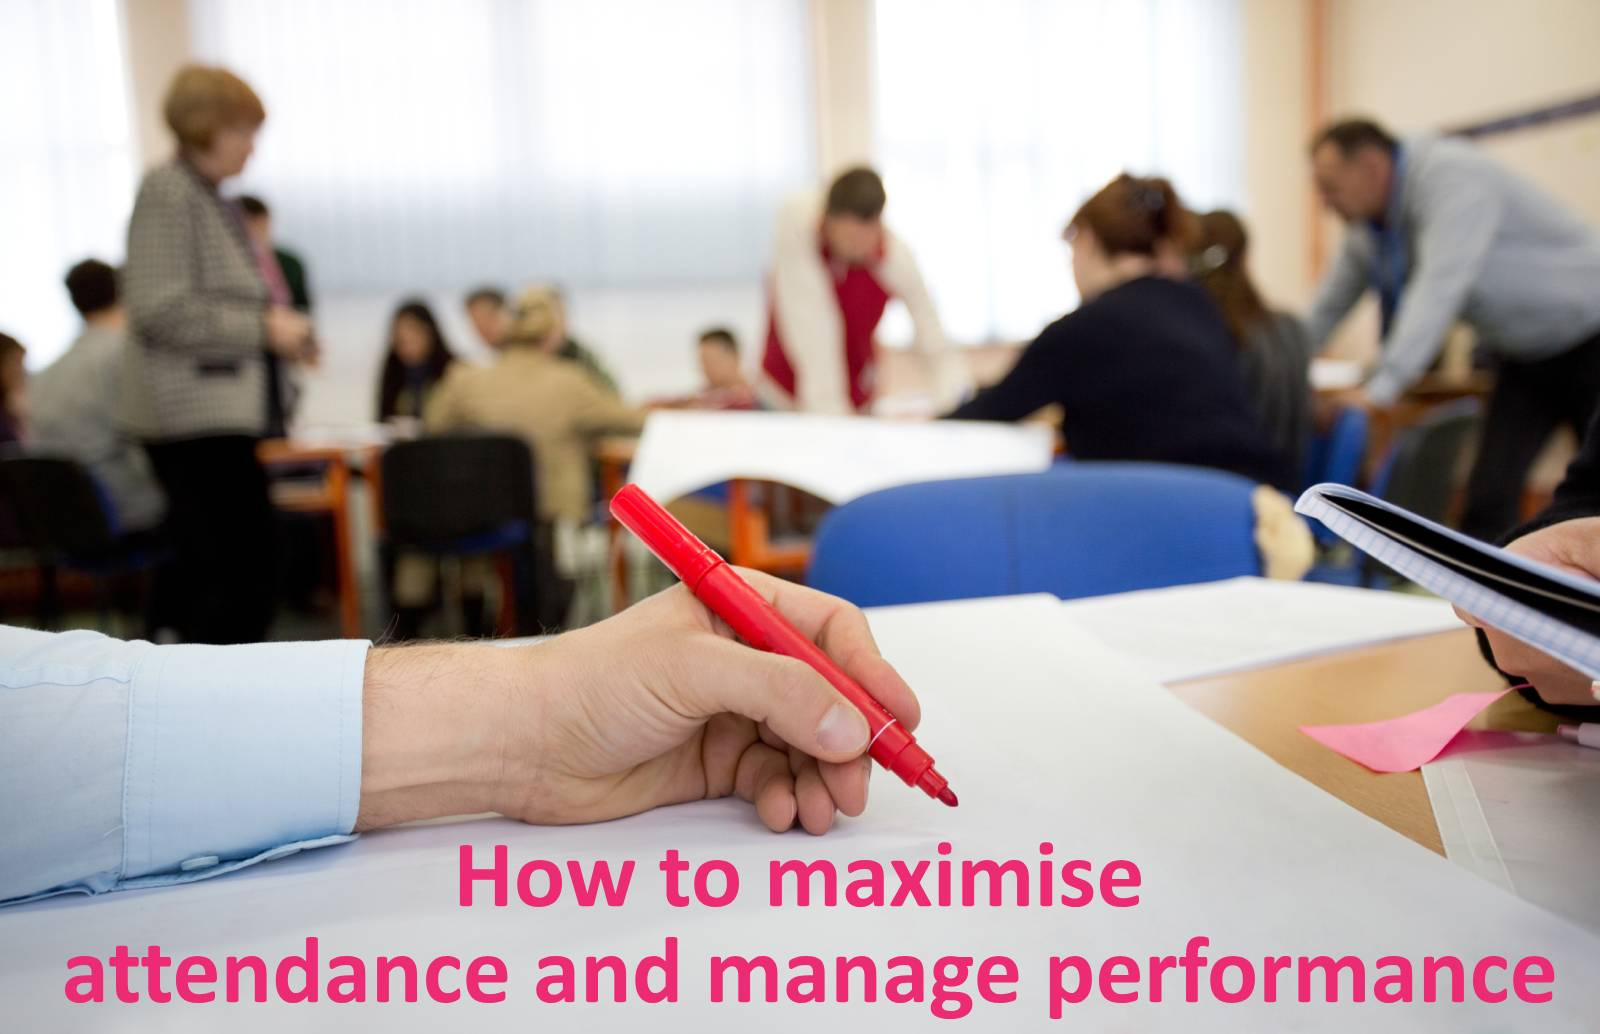 How to maximise attendance and manage performance workshop